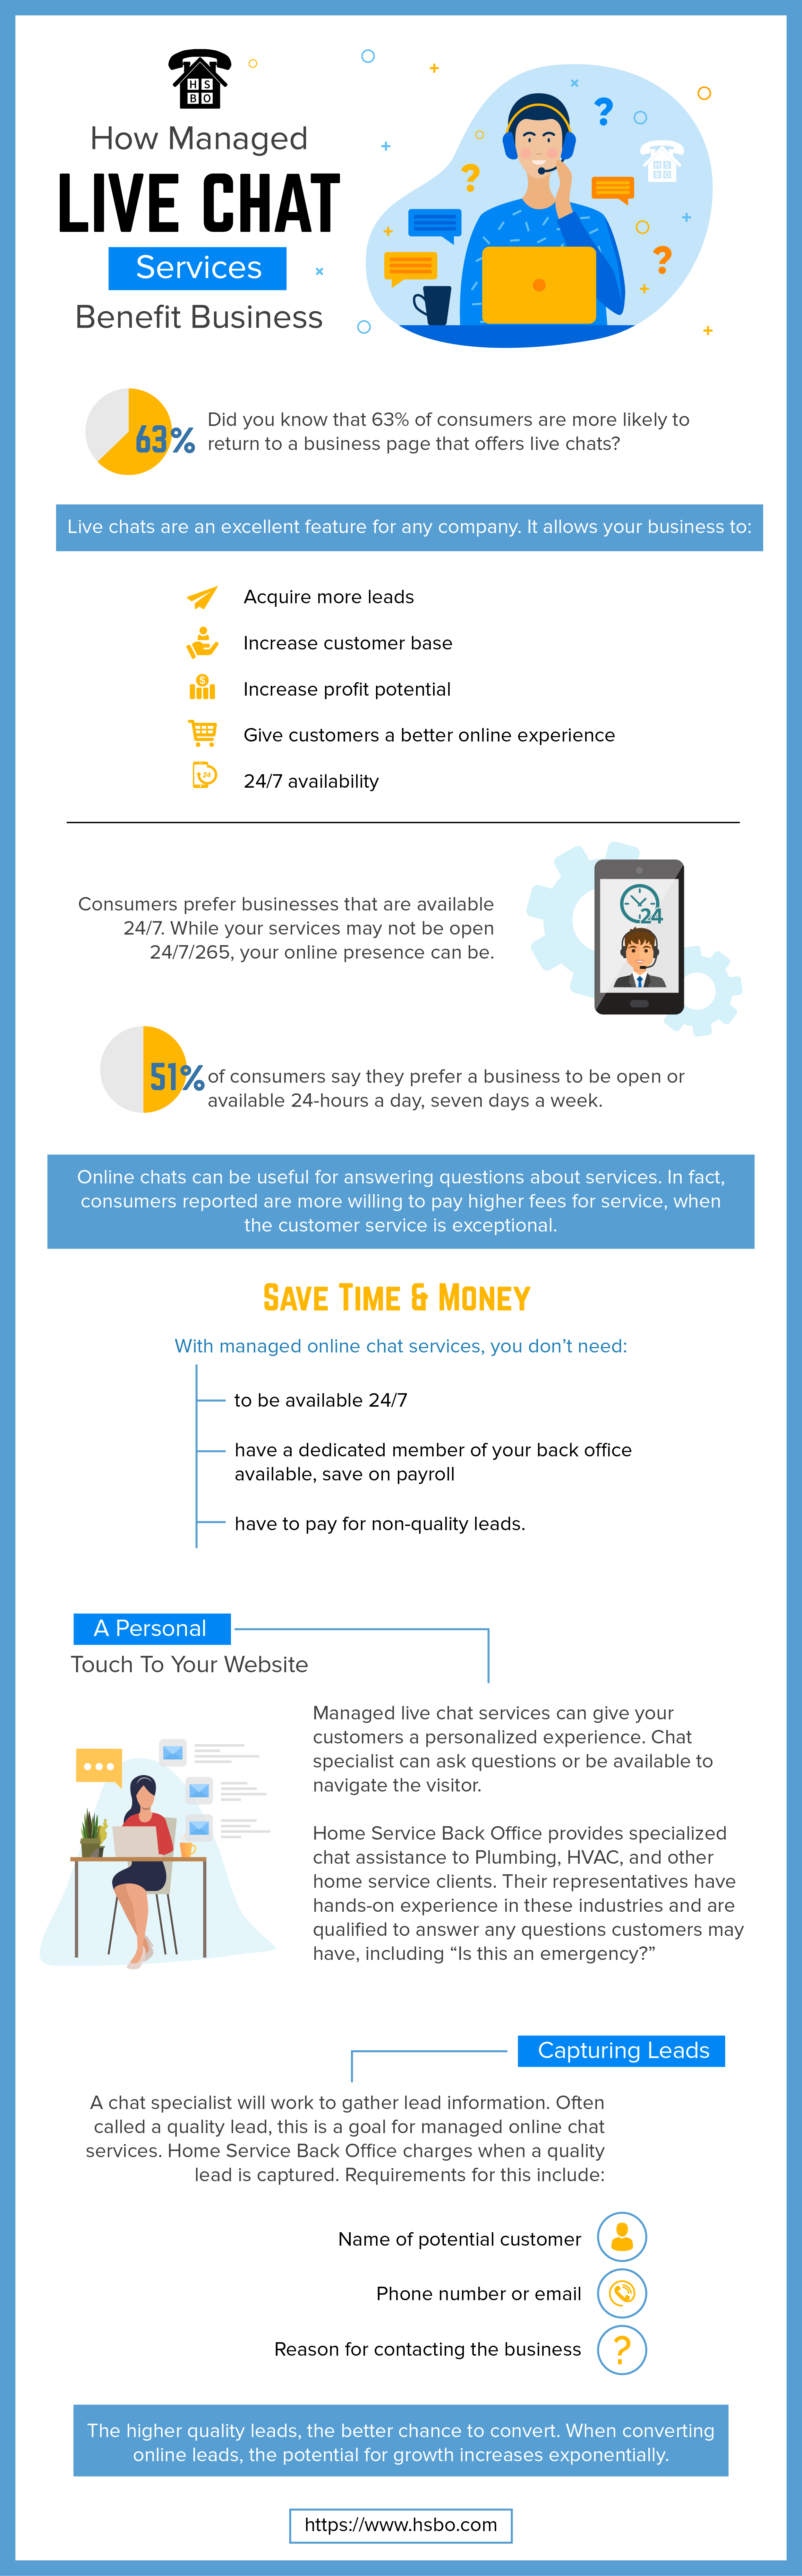 How Managed Live Chat Services Benefit Business